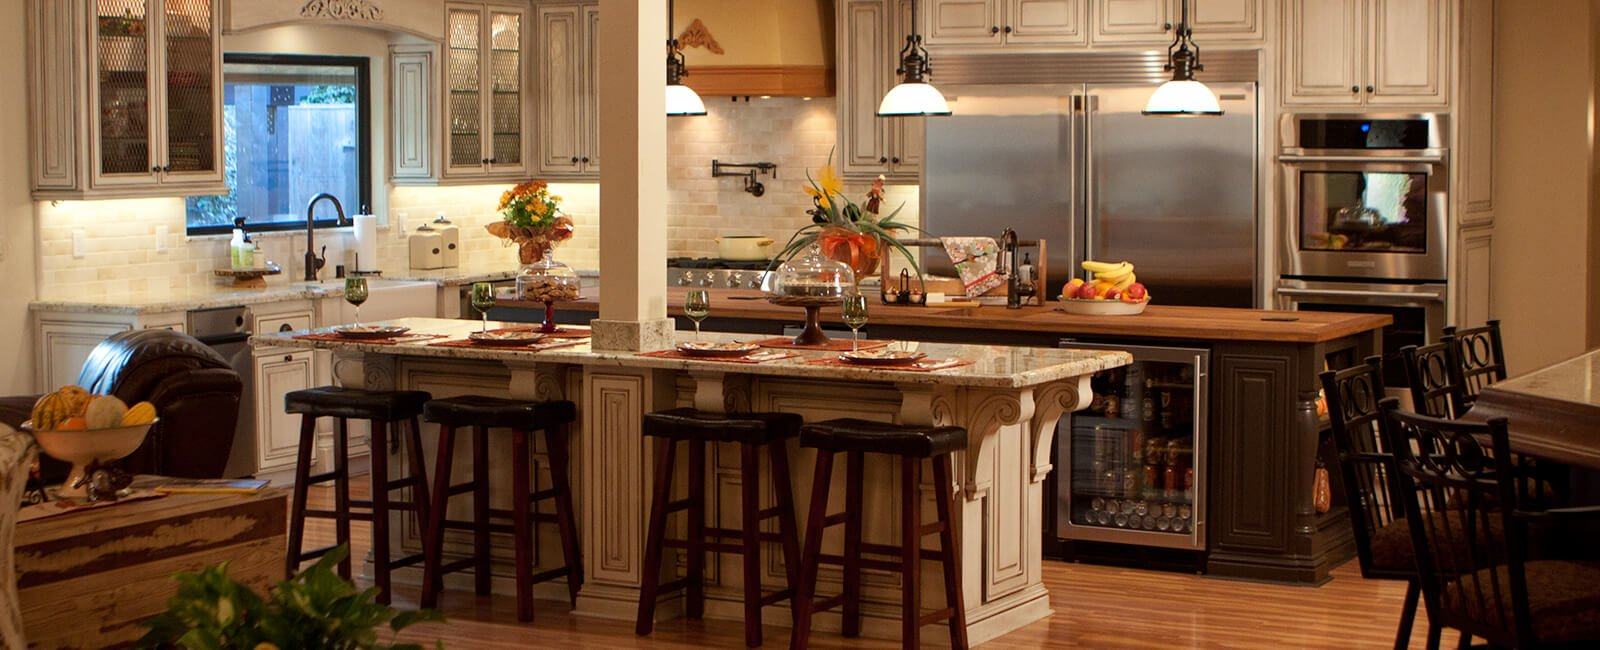 How Much Does A Kitchen Remodel Cost In Fresno California